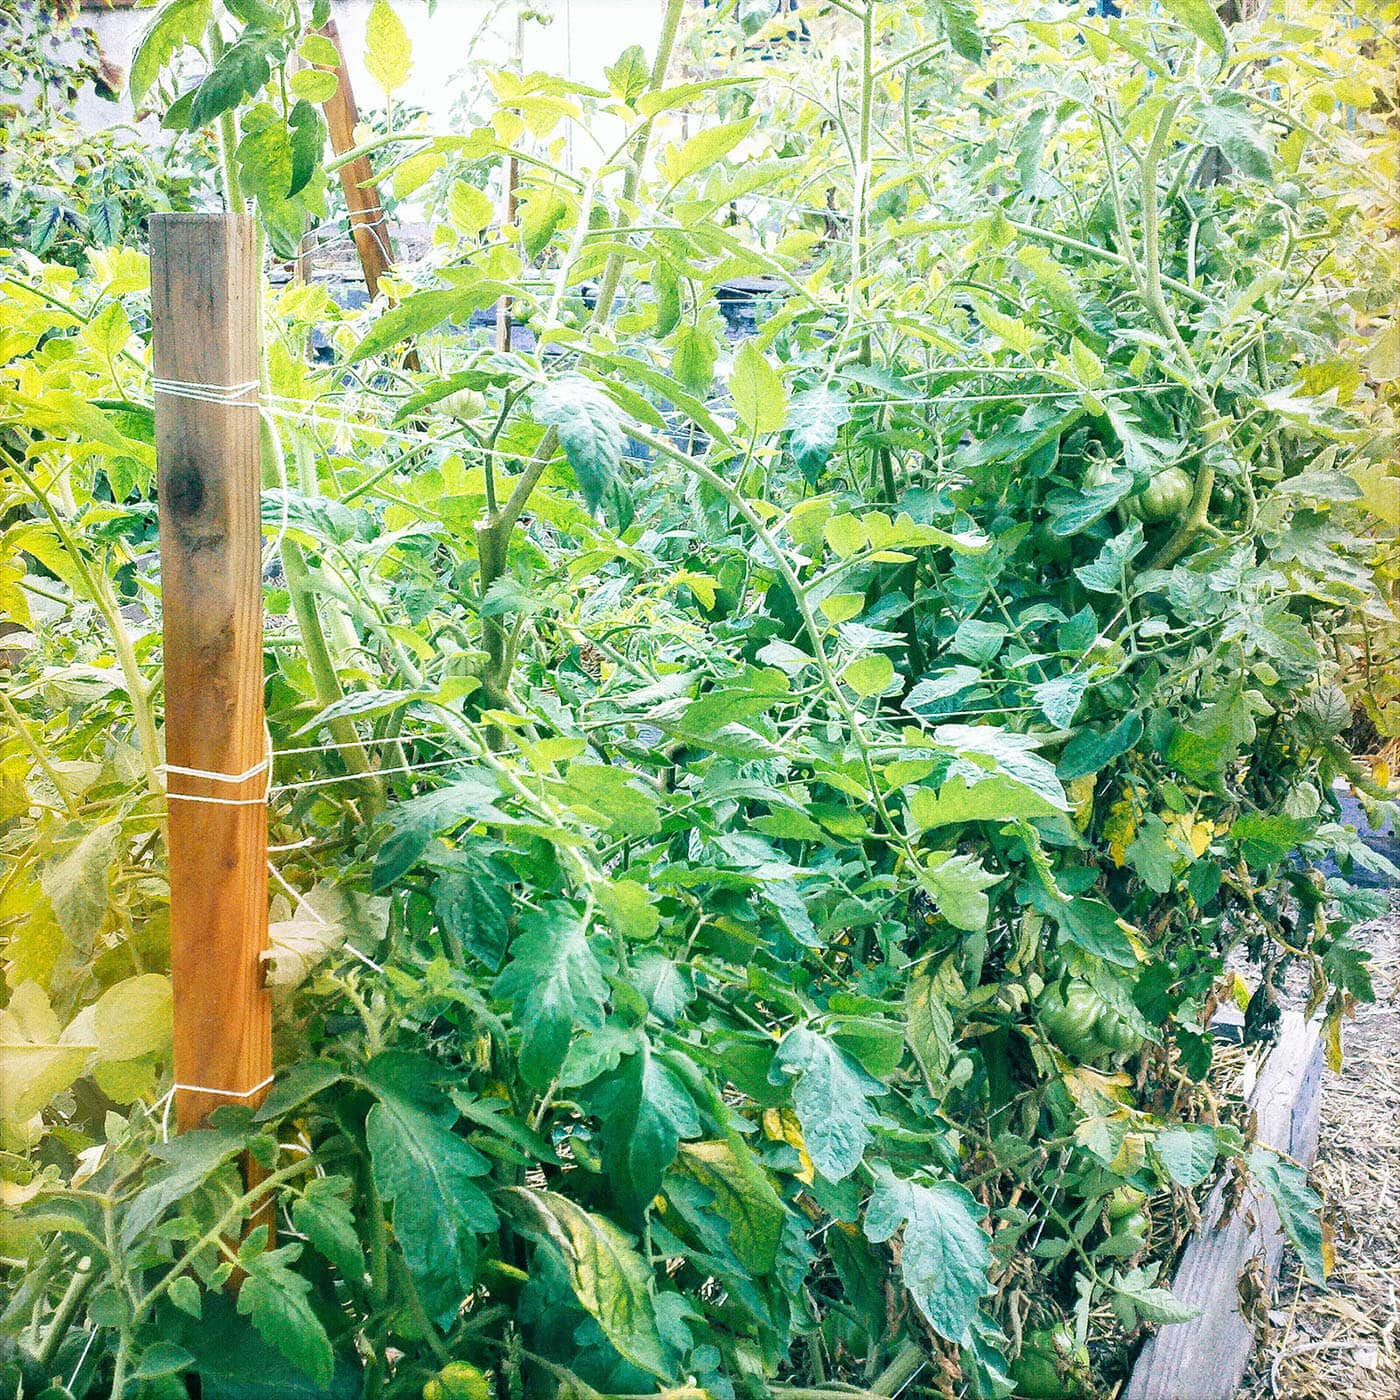 Mature tomato plants supported with loops of twine in a Florida Weave